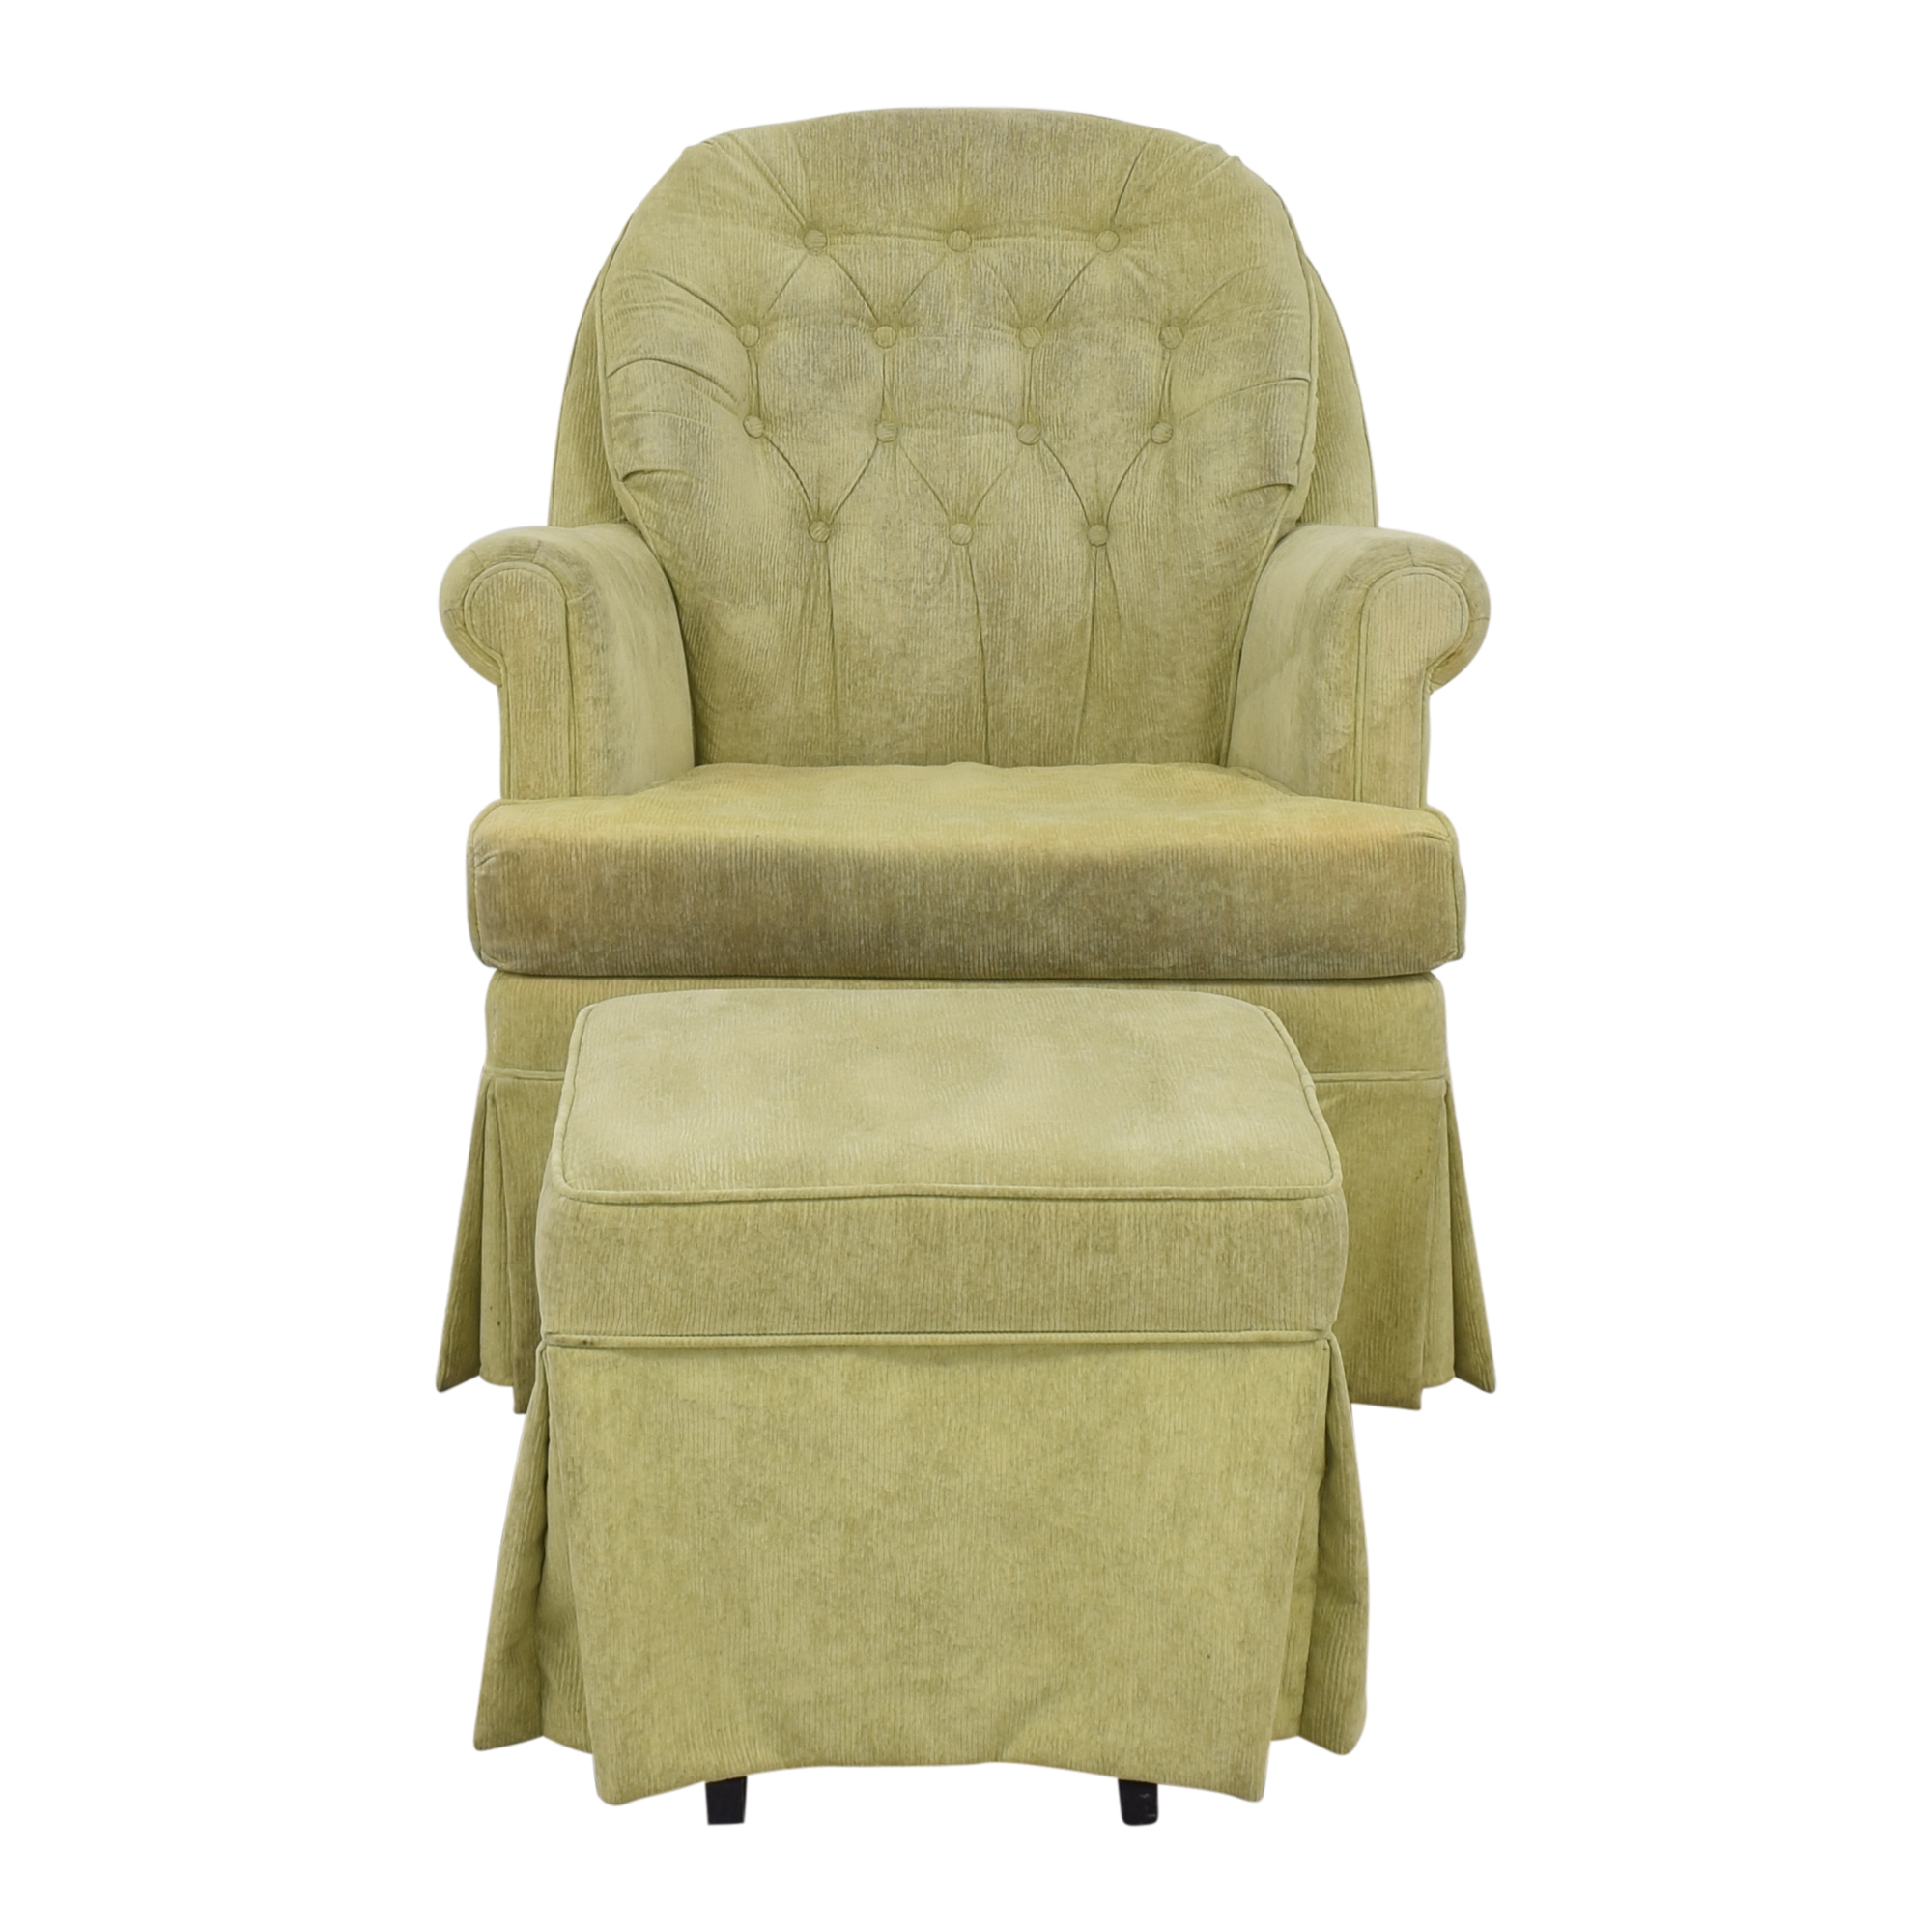 shop Babyletto Nursery Glider and Gliding Ottoman Babyletto Chairs